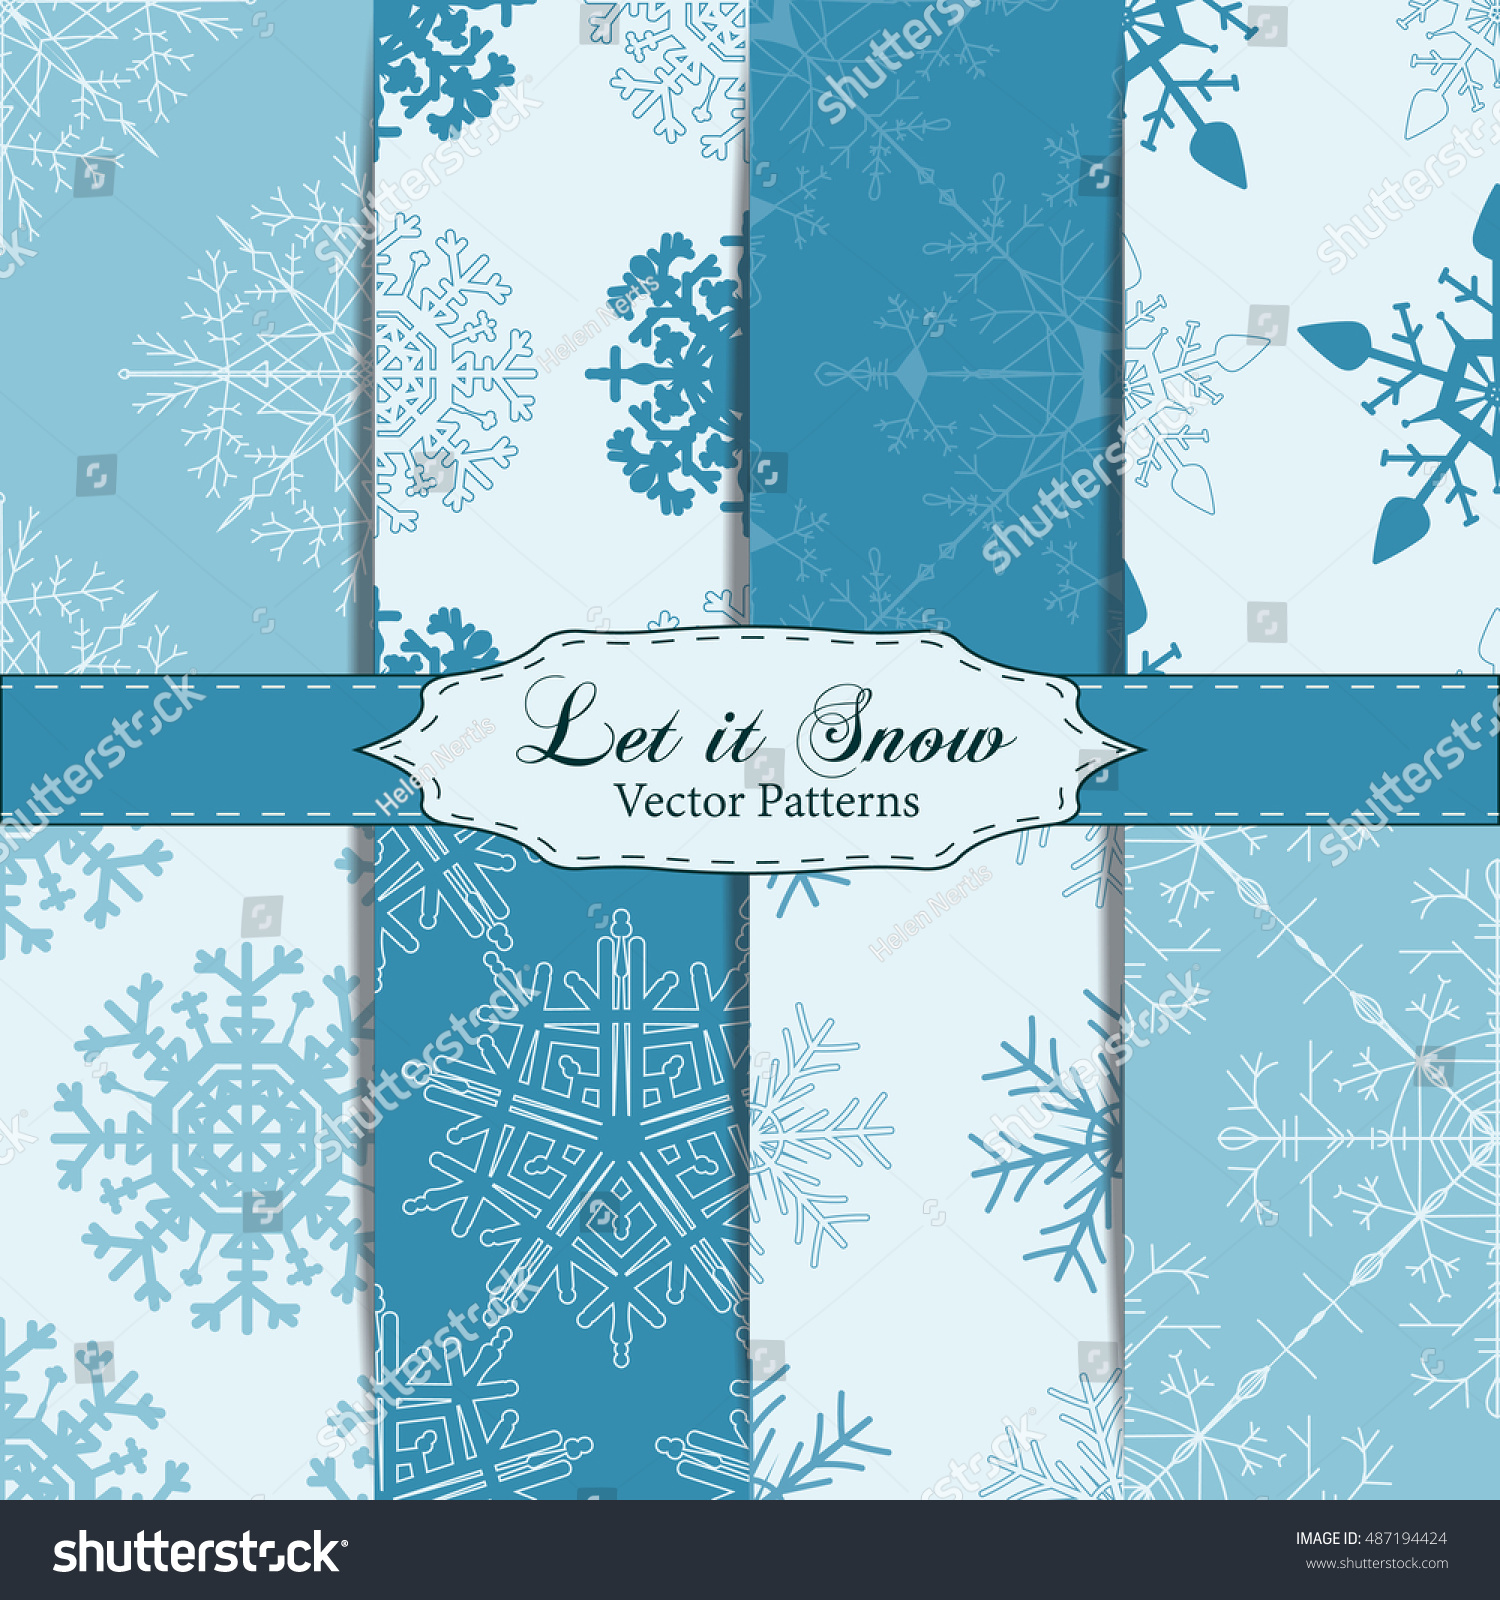 Set Snowflake Patterns Snowflake Vector Patterns Stock